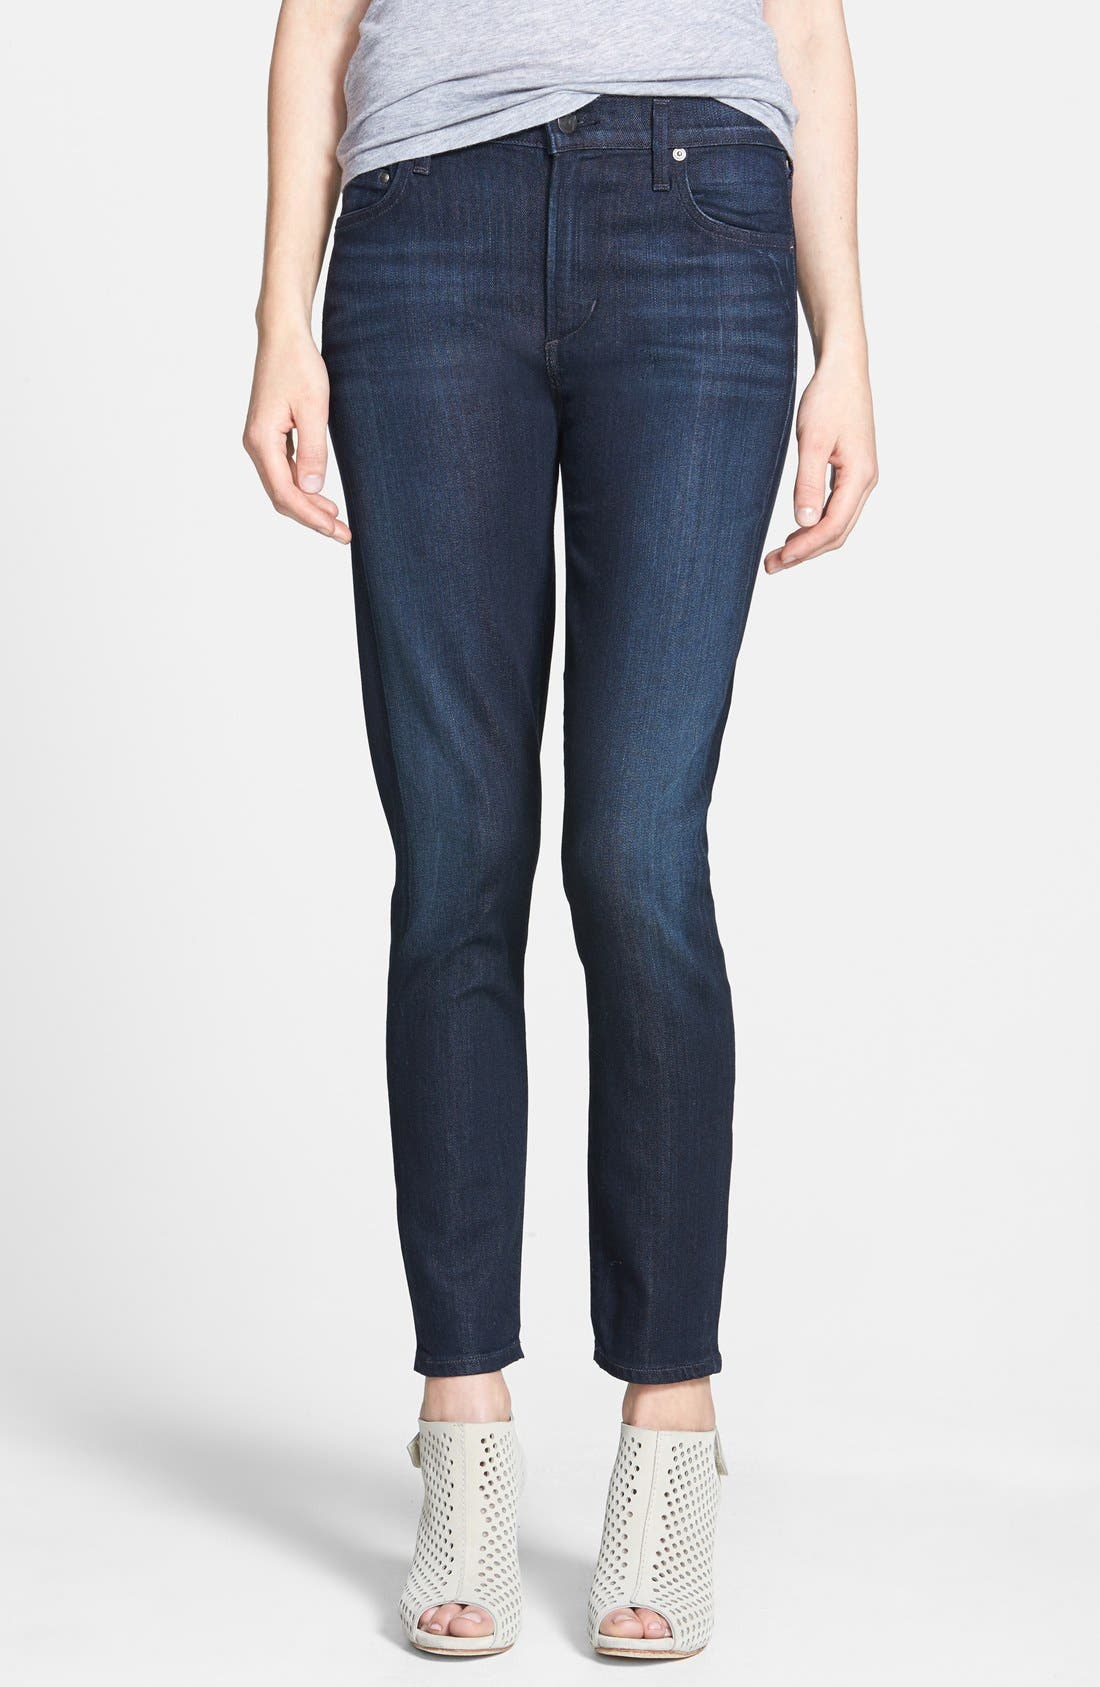 Alternate Image 1 Selected - Citizens of Humanity 'Rocket' Crop Skinny Jeans (Space)